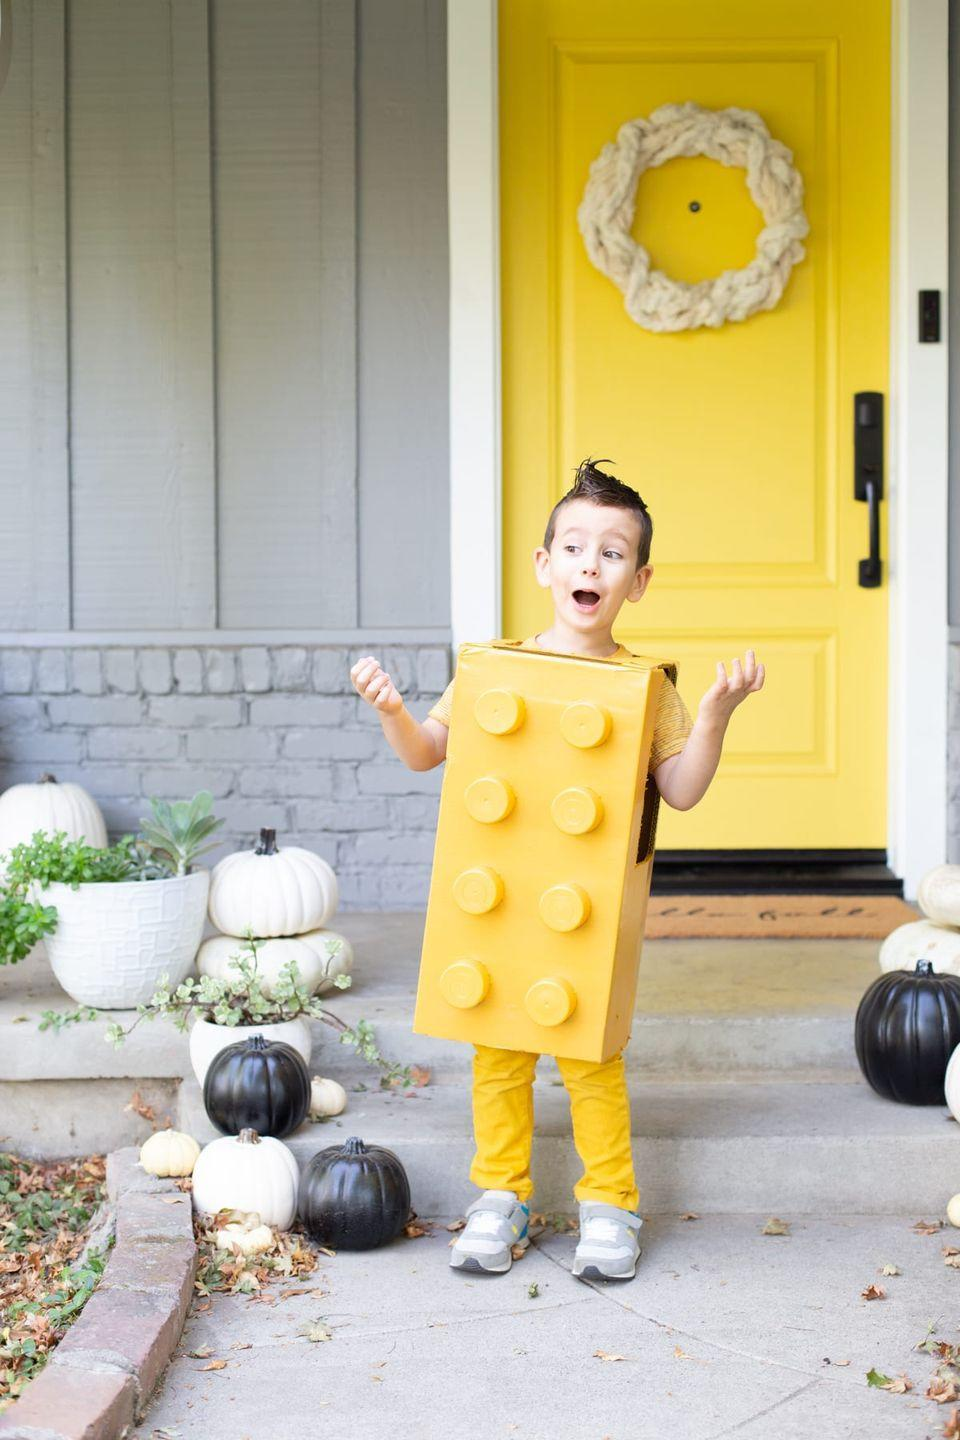 """<p>This <a href=""""https://lovelyindeed.com/lego-costume-diy-halloween/"""" rel=""""nofollow noopener"""" target=""""_blank"""" data-ylk=""""slk:DIY LEGO"""" class=""""link rapid-noclick-resp"""">DIY LEGO</a> look will thrill your little one this Halloween. Play-time not is over yet!<br></p>"""